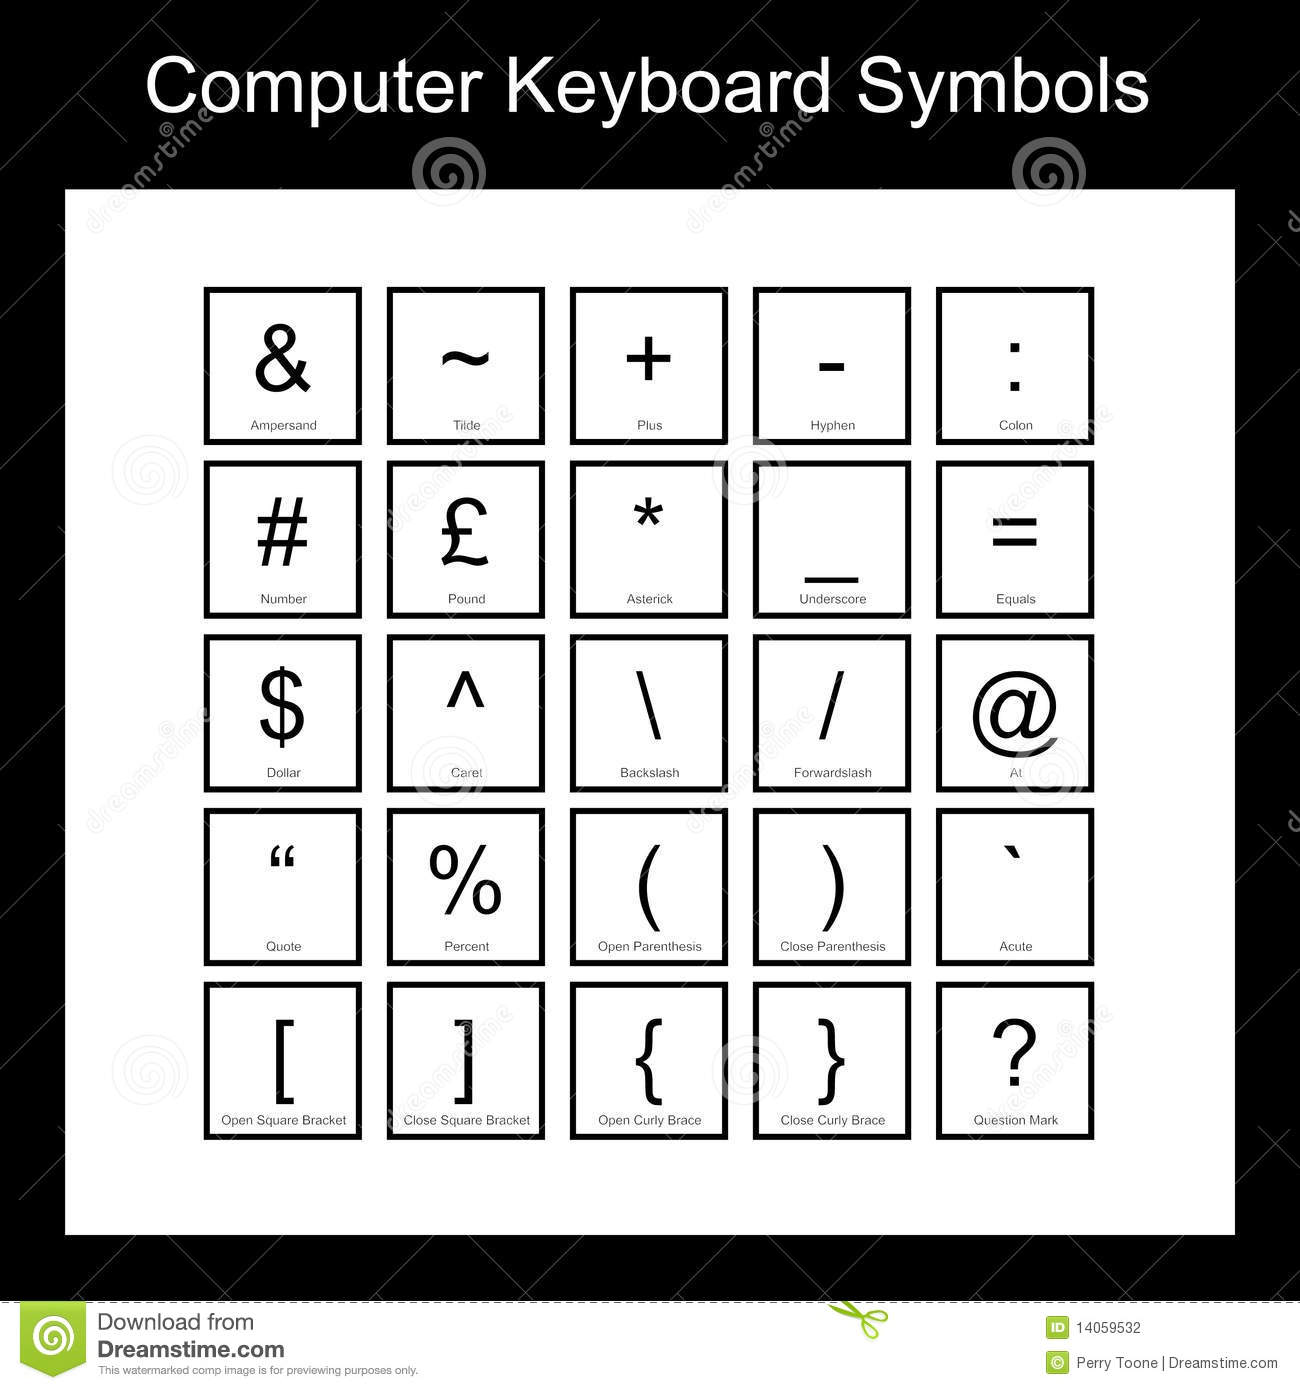 Signs and symbols for facebook images symbol and sign ideas keyboard symbols for facebook images keyboard symbols for facebook symbols on keyboard computer buycottarizona biocorpaavc